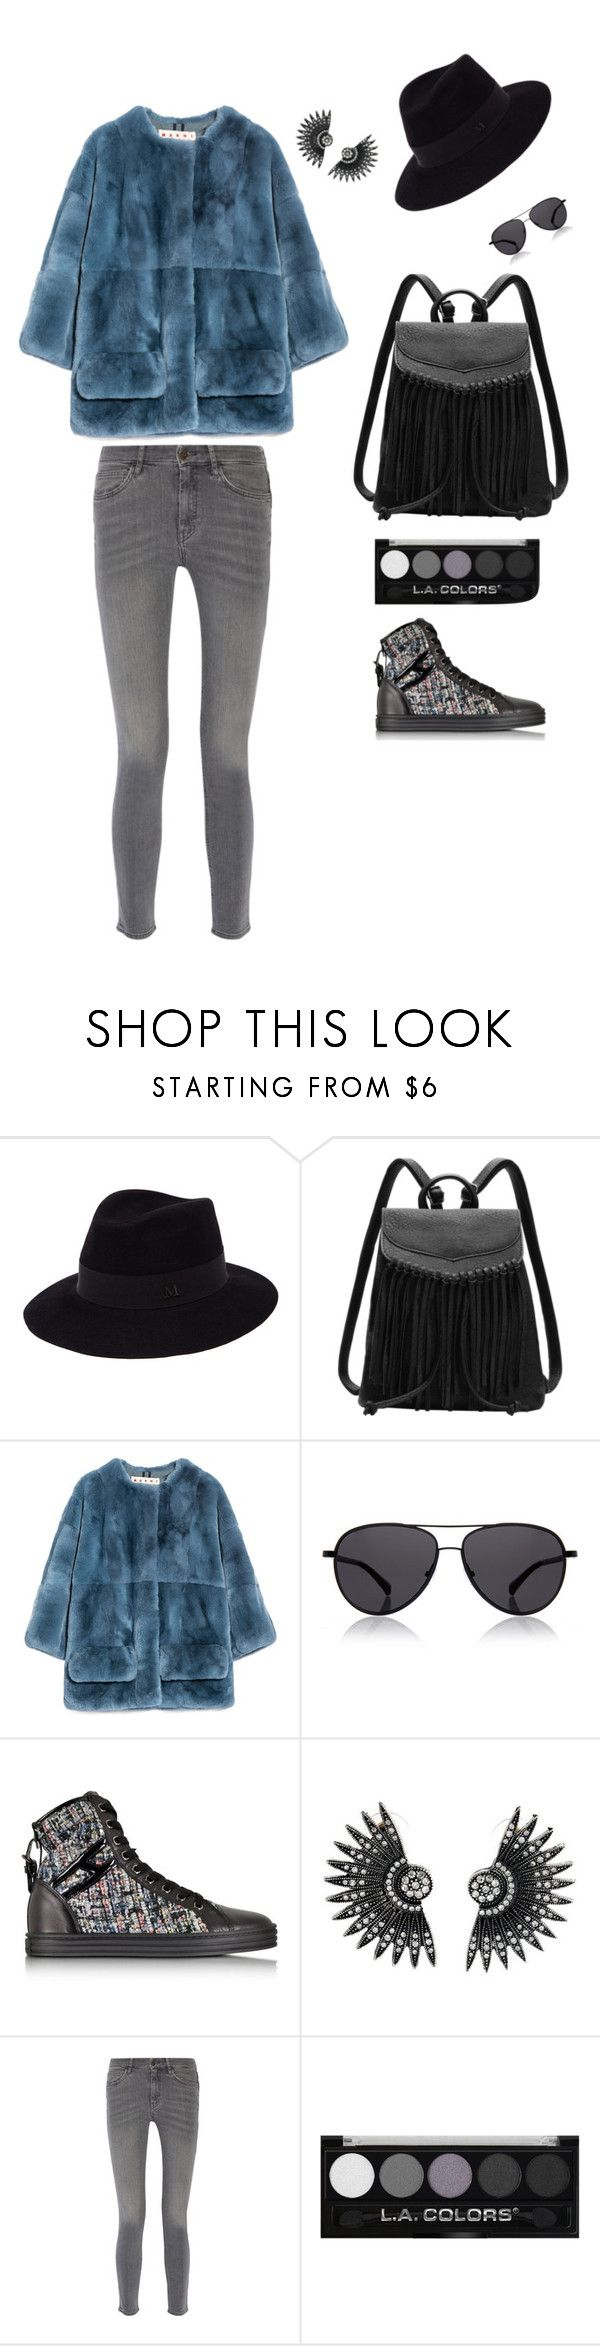 """'Pelliccia Colorata rigorosamente ecologica!'"" by loredanacossu on Polyvore featuring Maison Michel, Marni, The Row, Hogan Rebel and MiH Jeans"